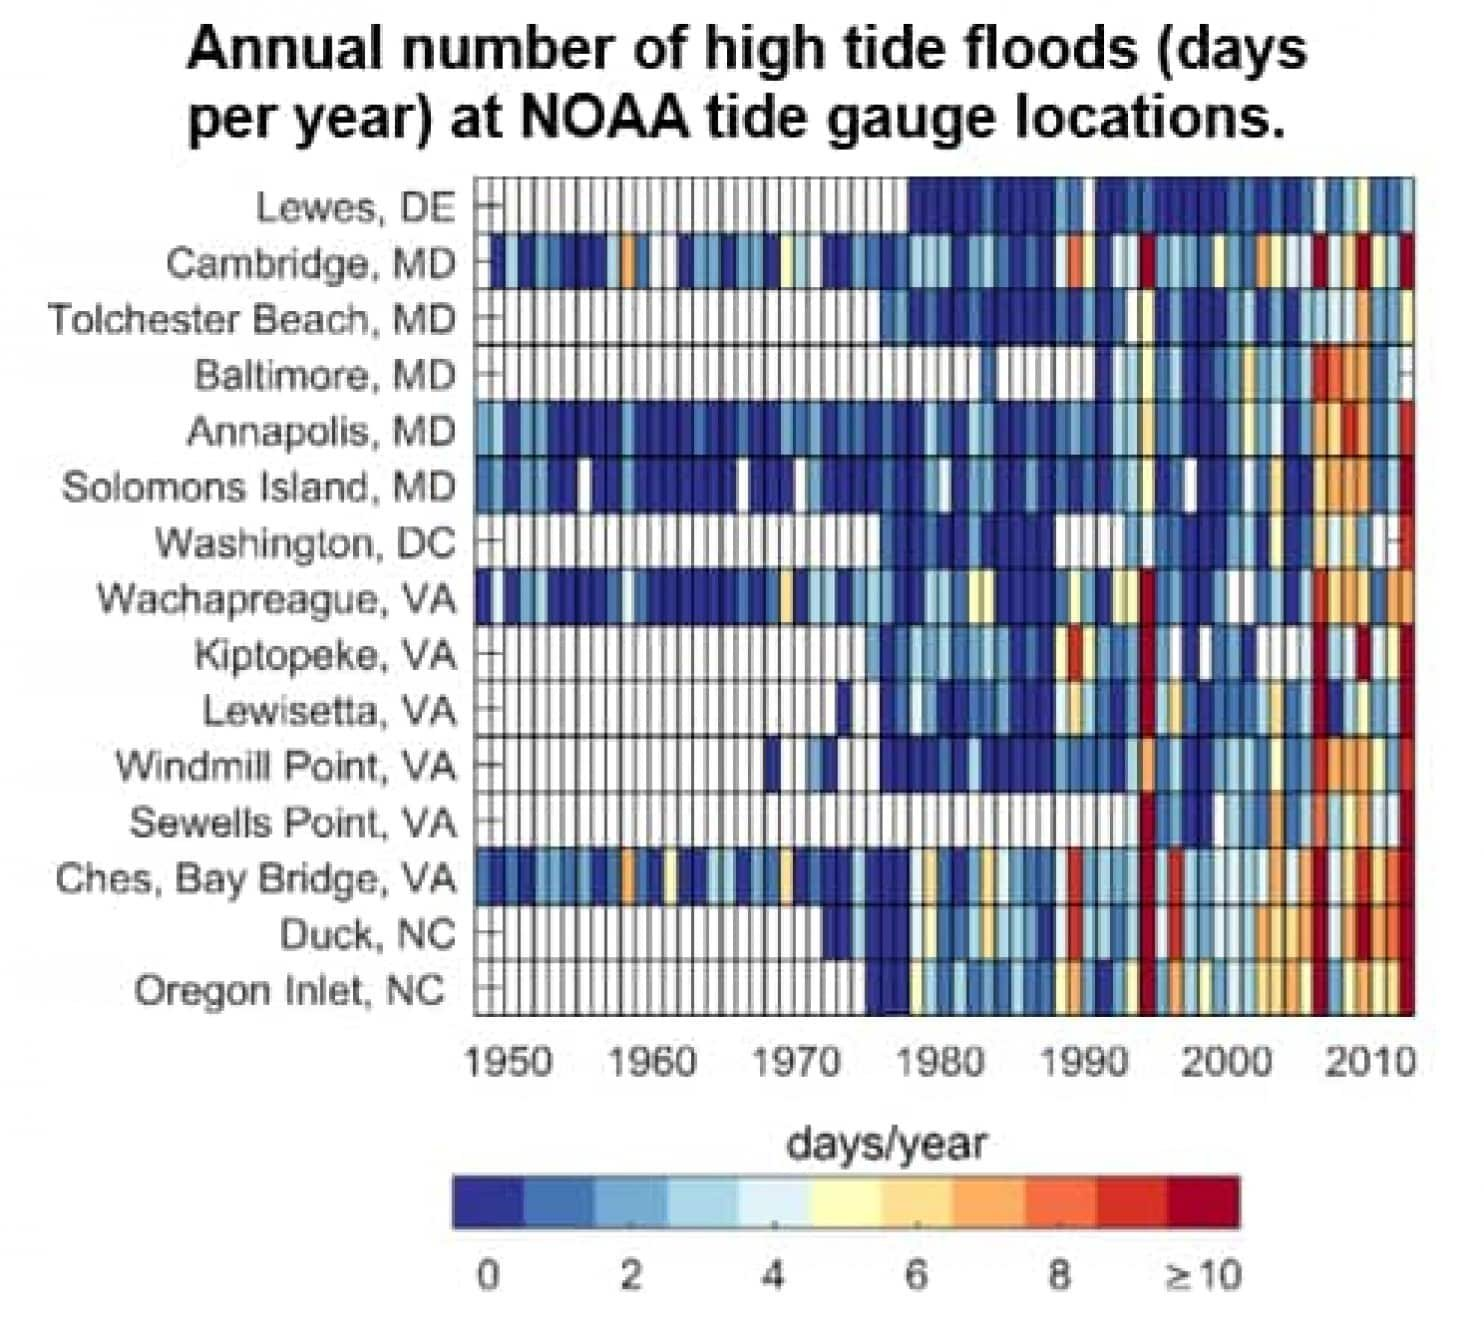 Porjections of flood days per year, from NOAA Study